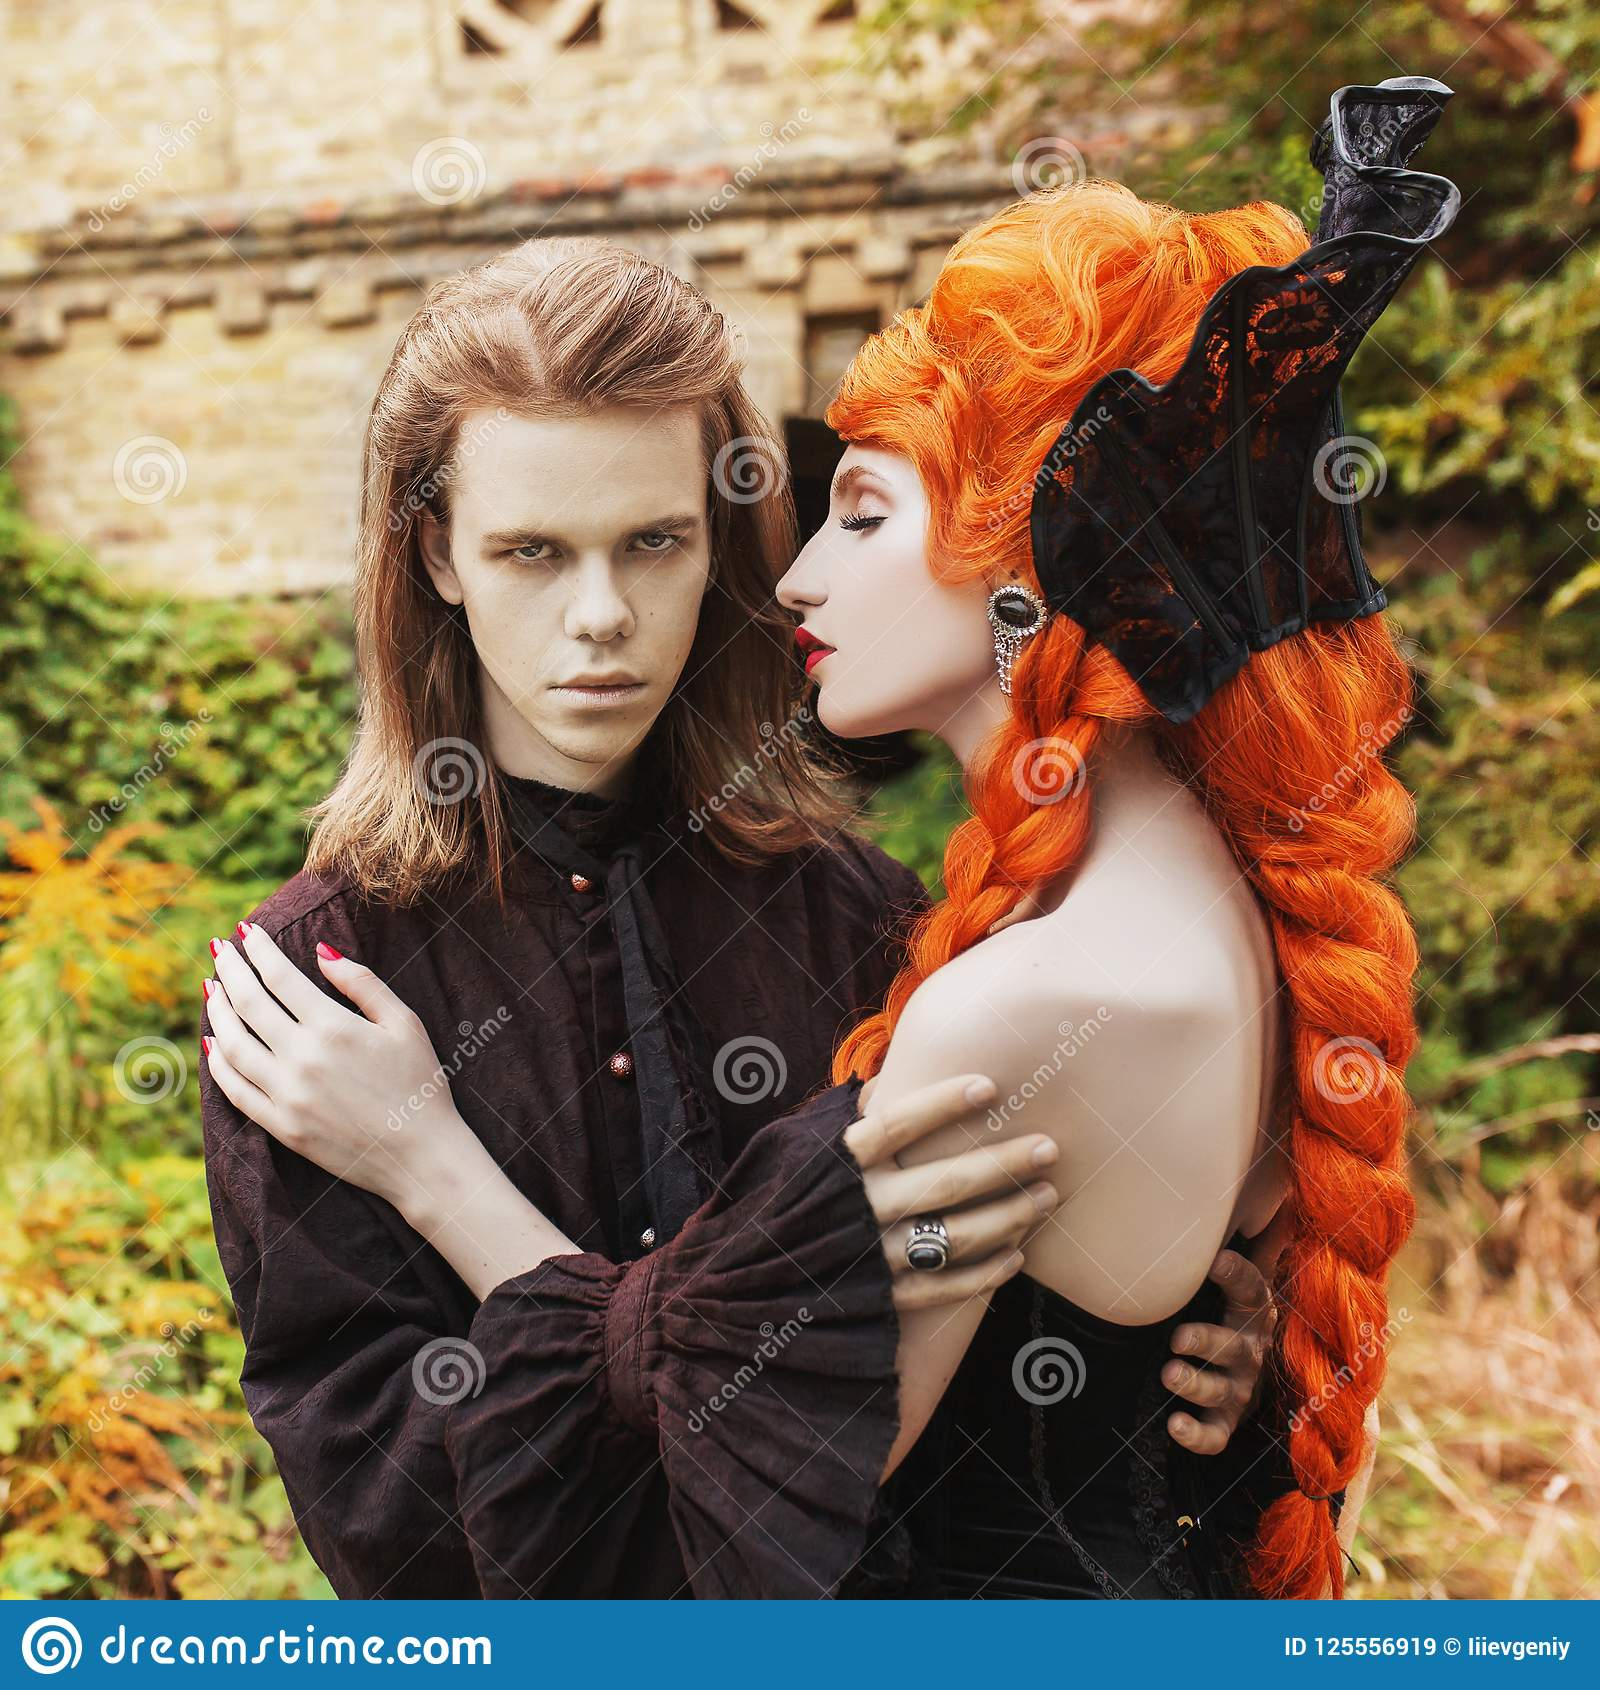 gothic couple in a halloween costume. pale undead vampire in dark